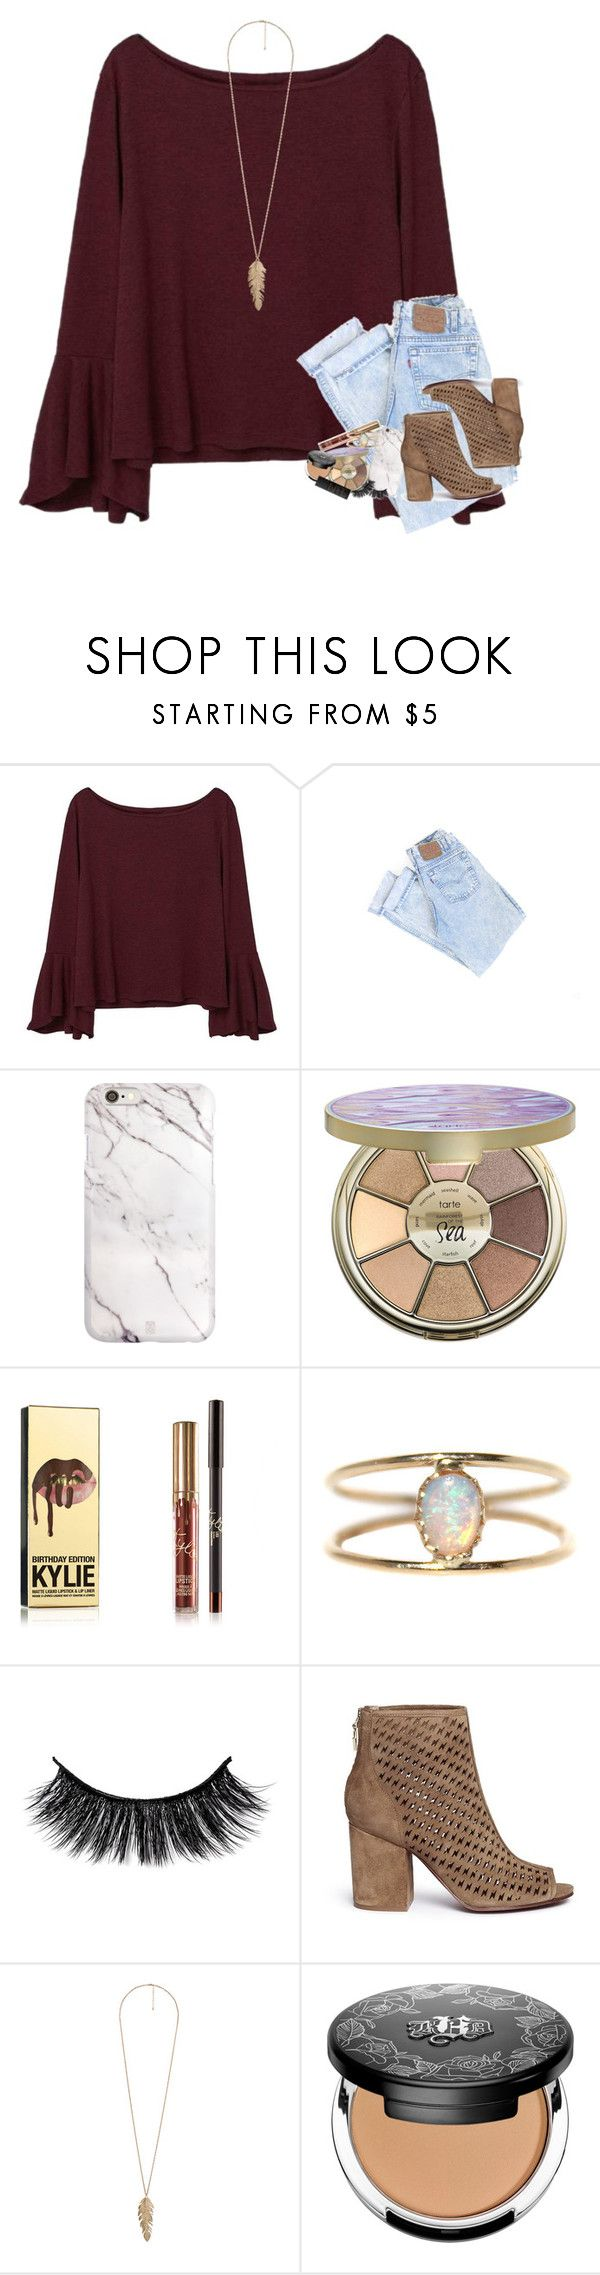 """i'm in love with the shape of you"" by mehanahan ❤ liked on Polyvore featuring MANGO, tarte, LUMO, Ash, Forever 21, Kat Von D and NARS Cosmetics"